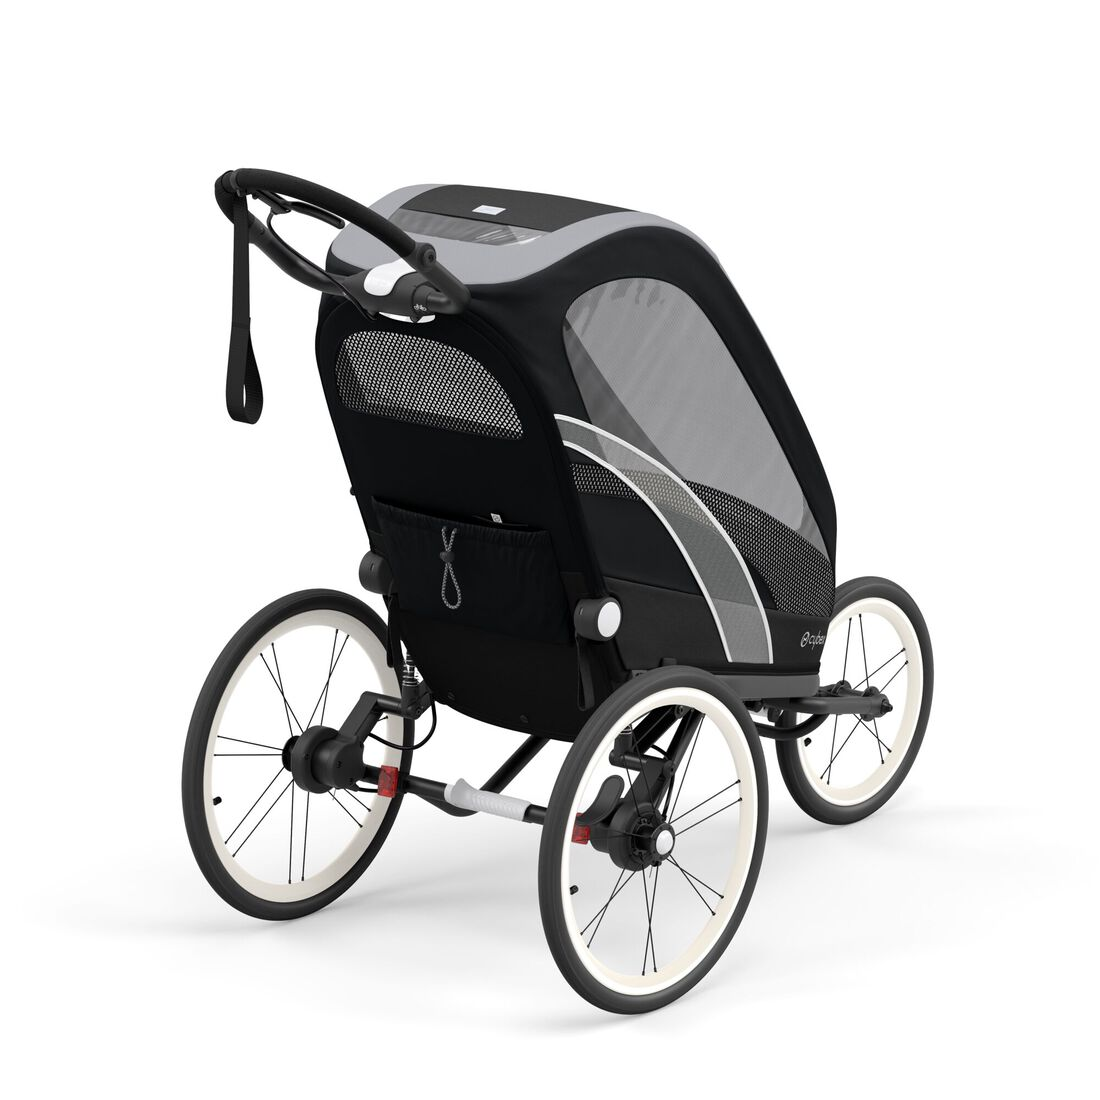 CYBEX Zeno One Box - All Black in All Black large image number 6